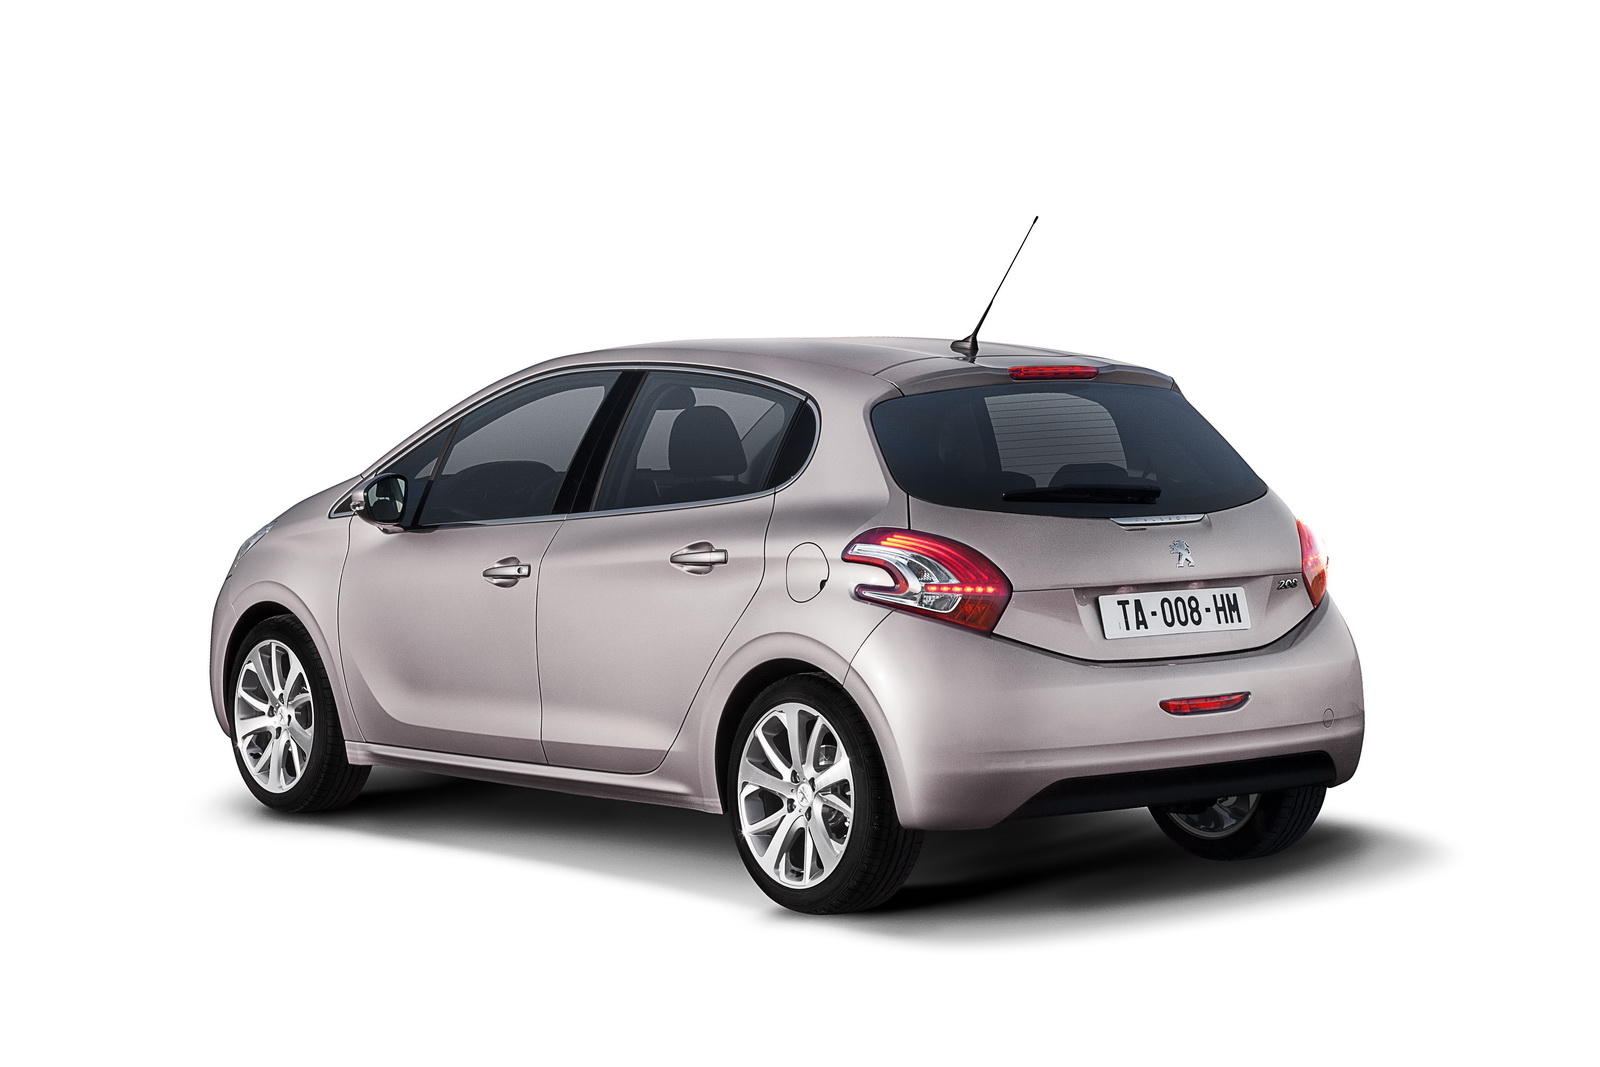 IN4RIDE: BRAND NEW PEUGEOT 208 HATCHES OUT